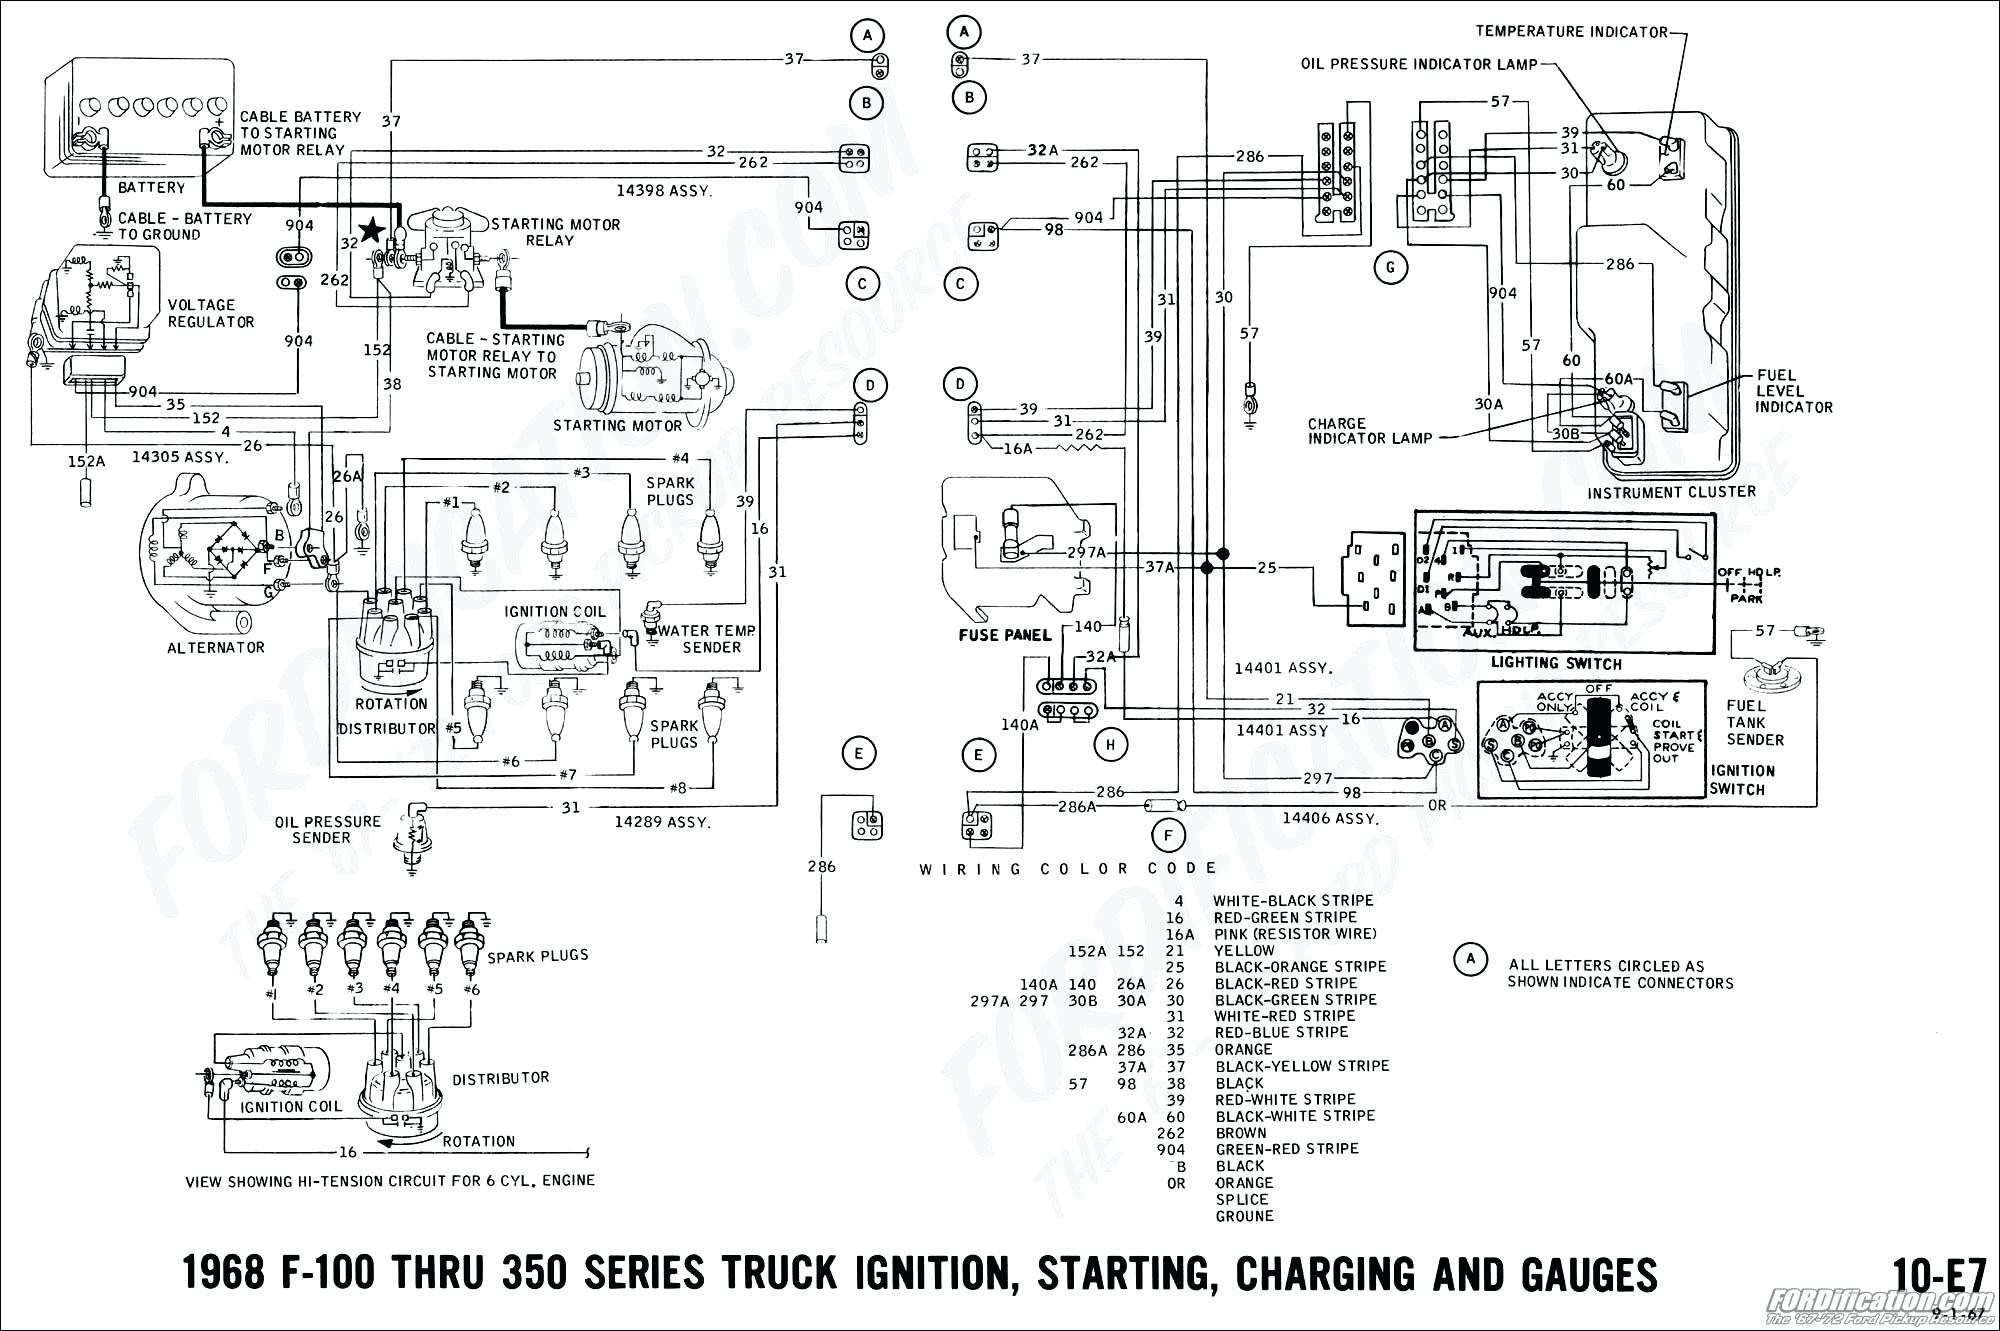 Ford 5 4 L Engine Diagram 2 ford E 250 Fuse Box 2000 E250 Diagram 5 4 Free Download Wiring Of Ford 5 4 L Engine Diagram 2